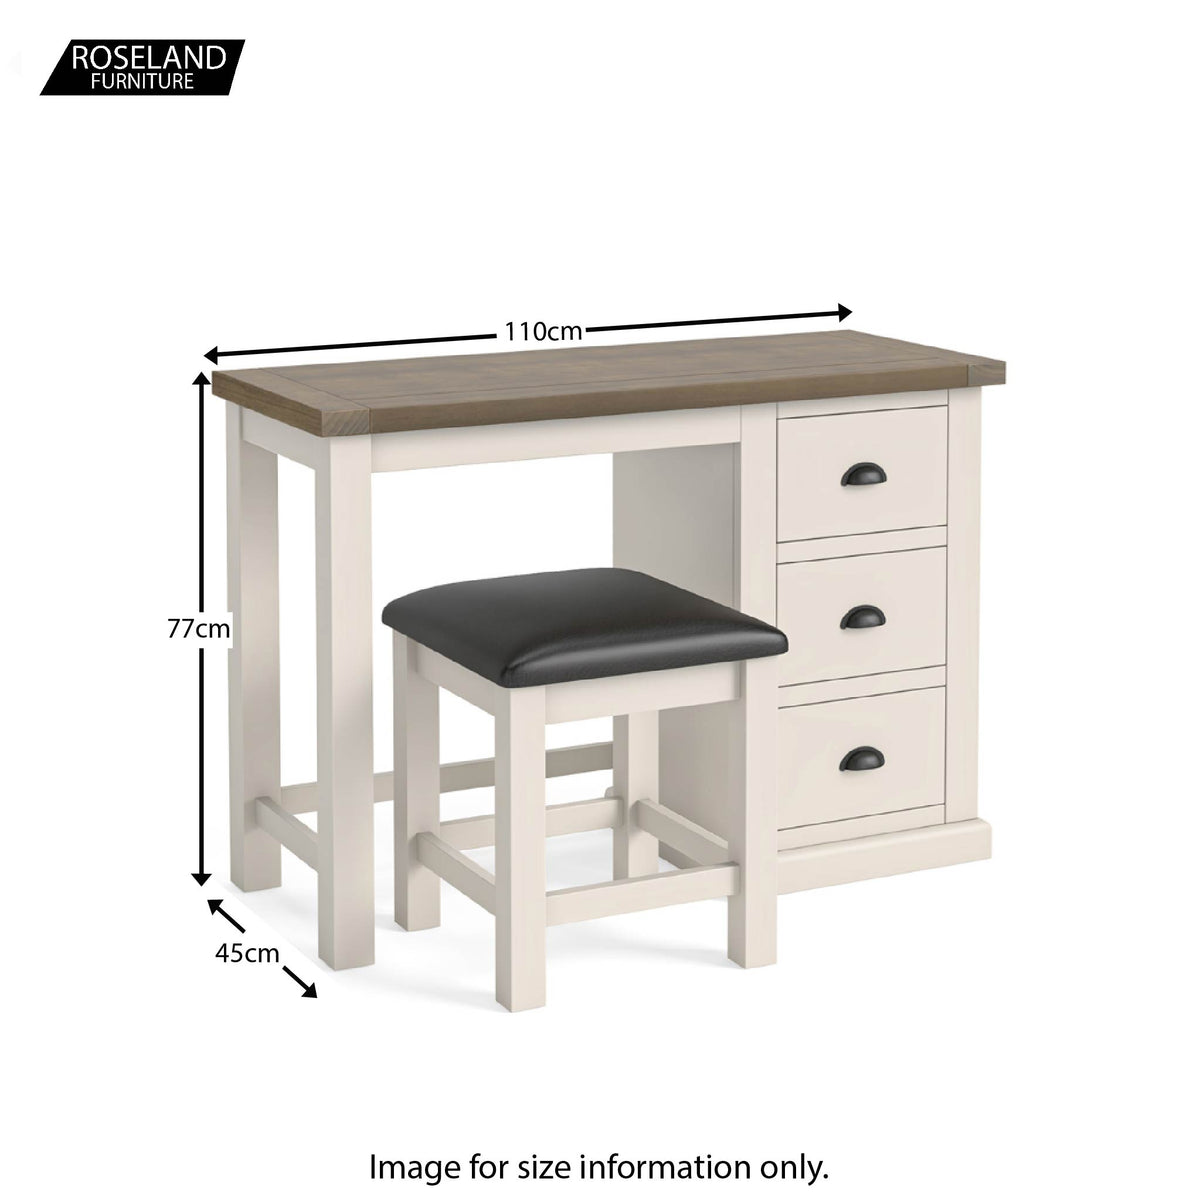 Dimensions - Hove Ivory Dressing Table & Stool